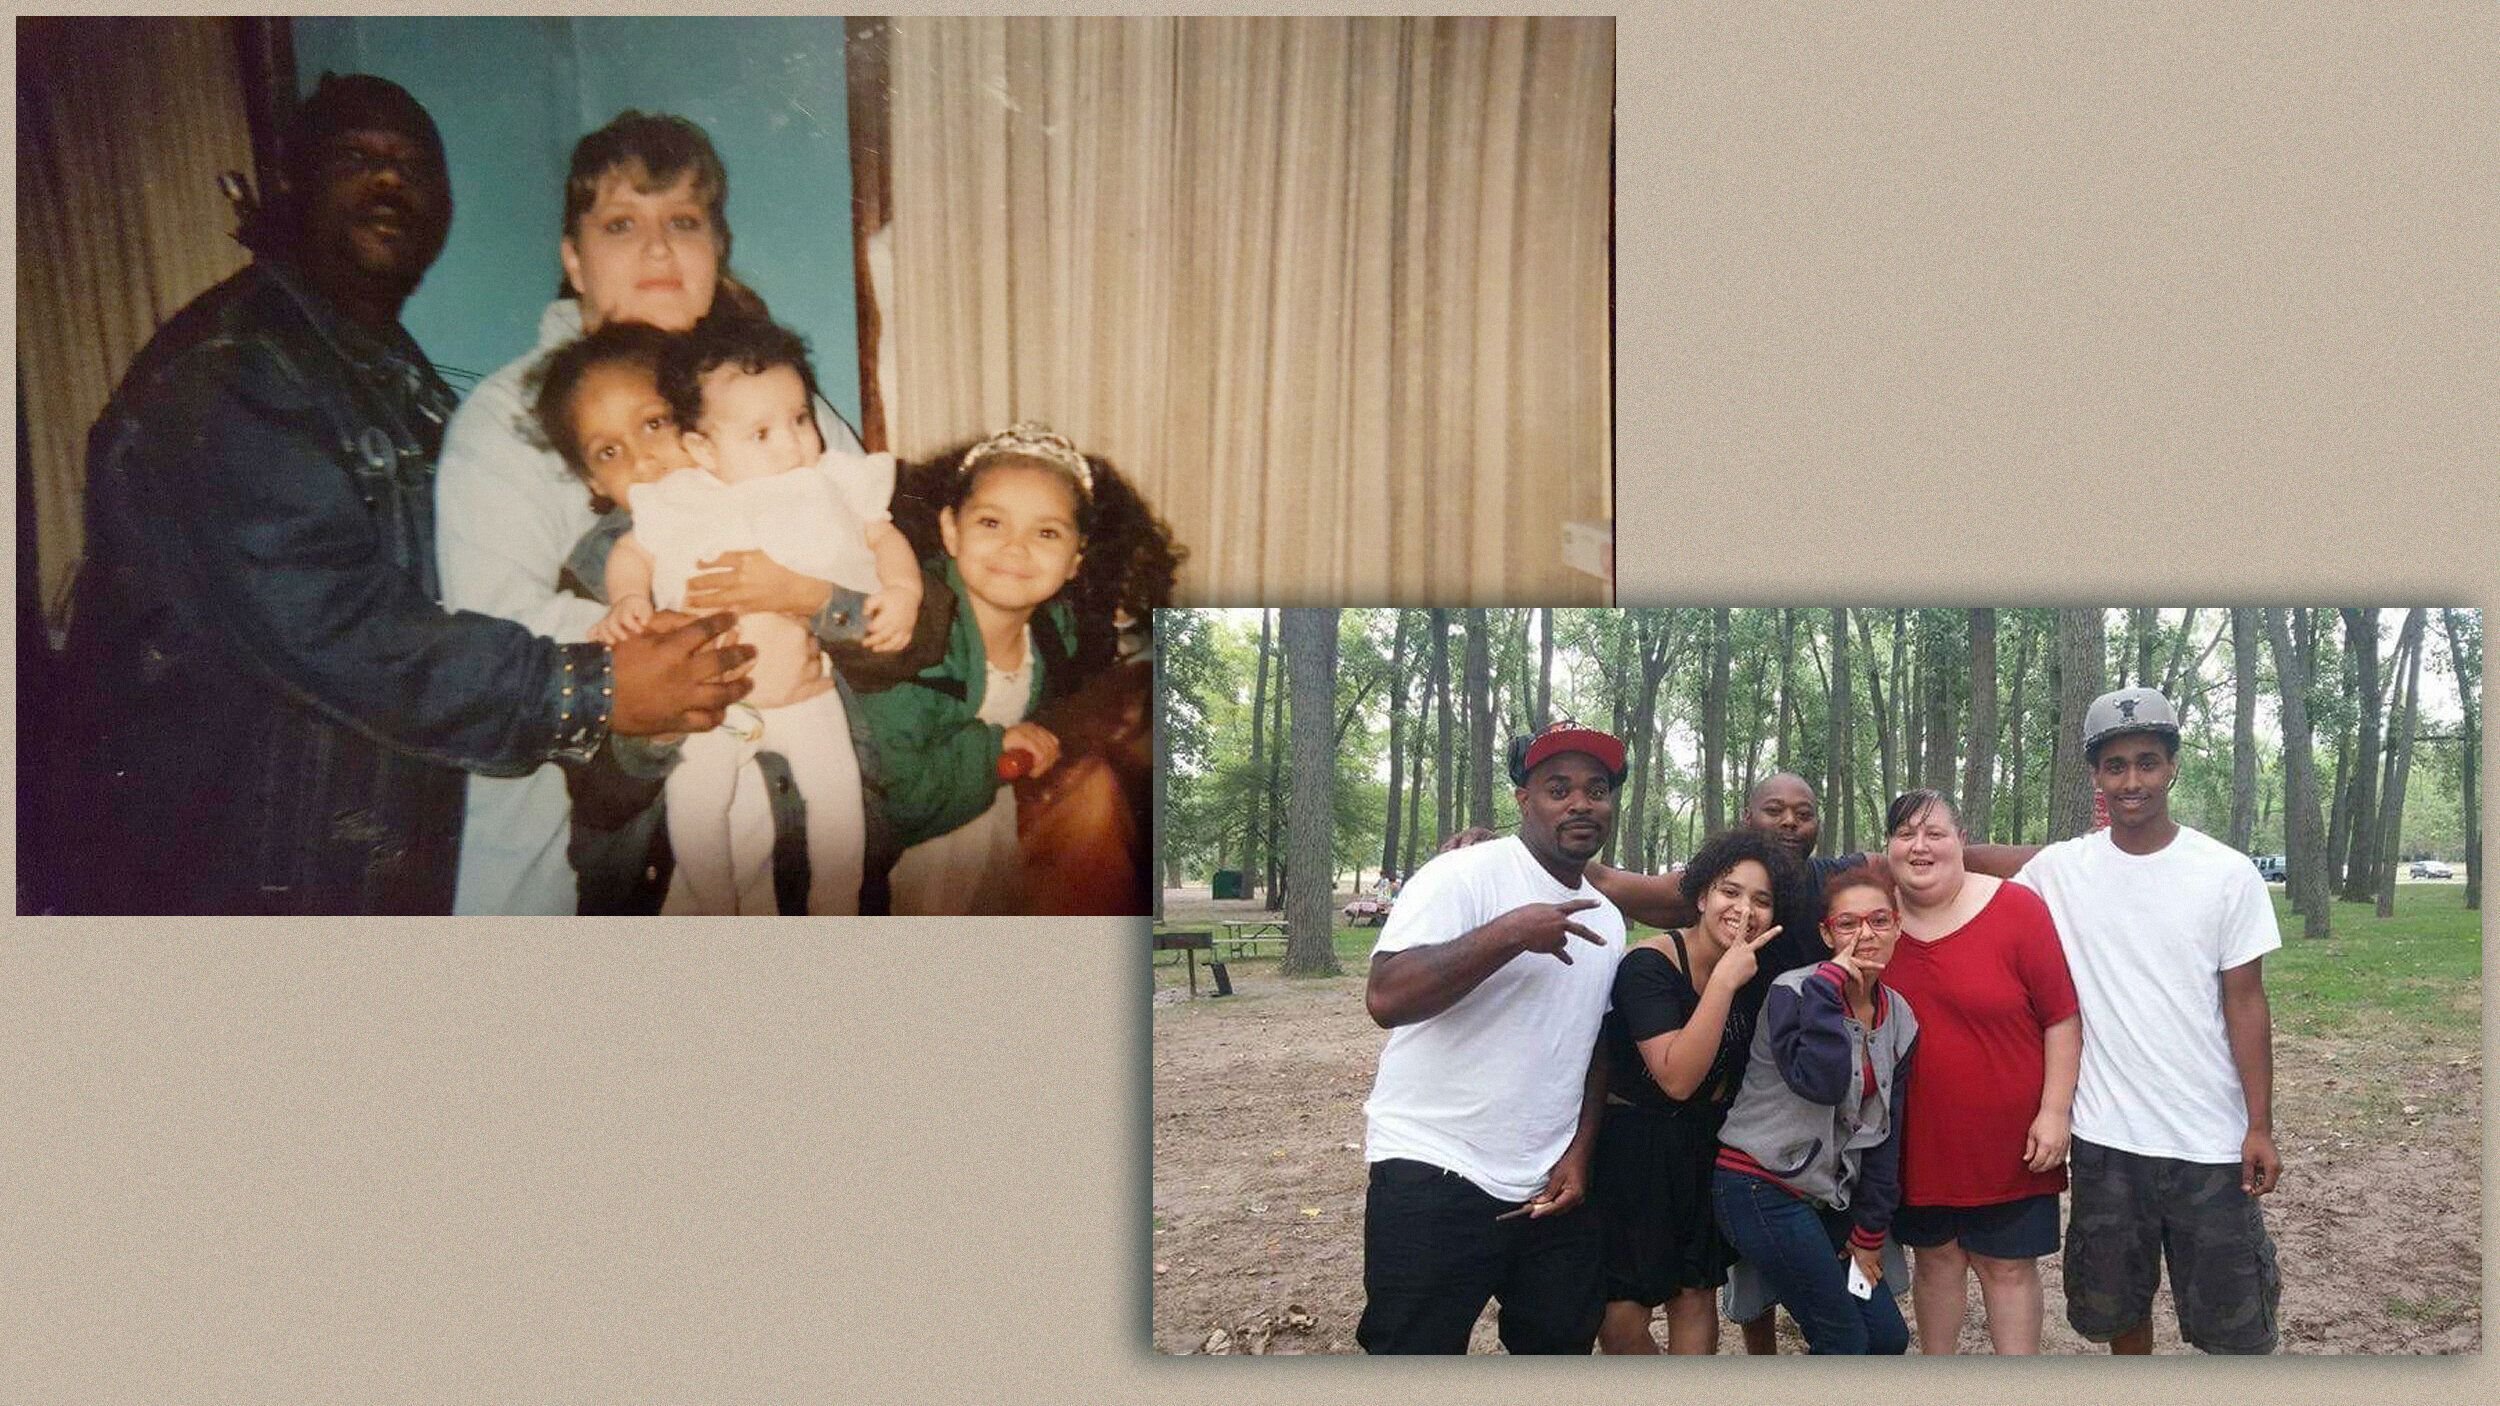 On left, Bresha (baby in center) is pictured with her mother, father and two siblings. On right, Bresha (in black) poses with